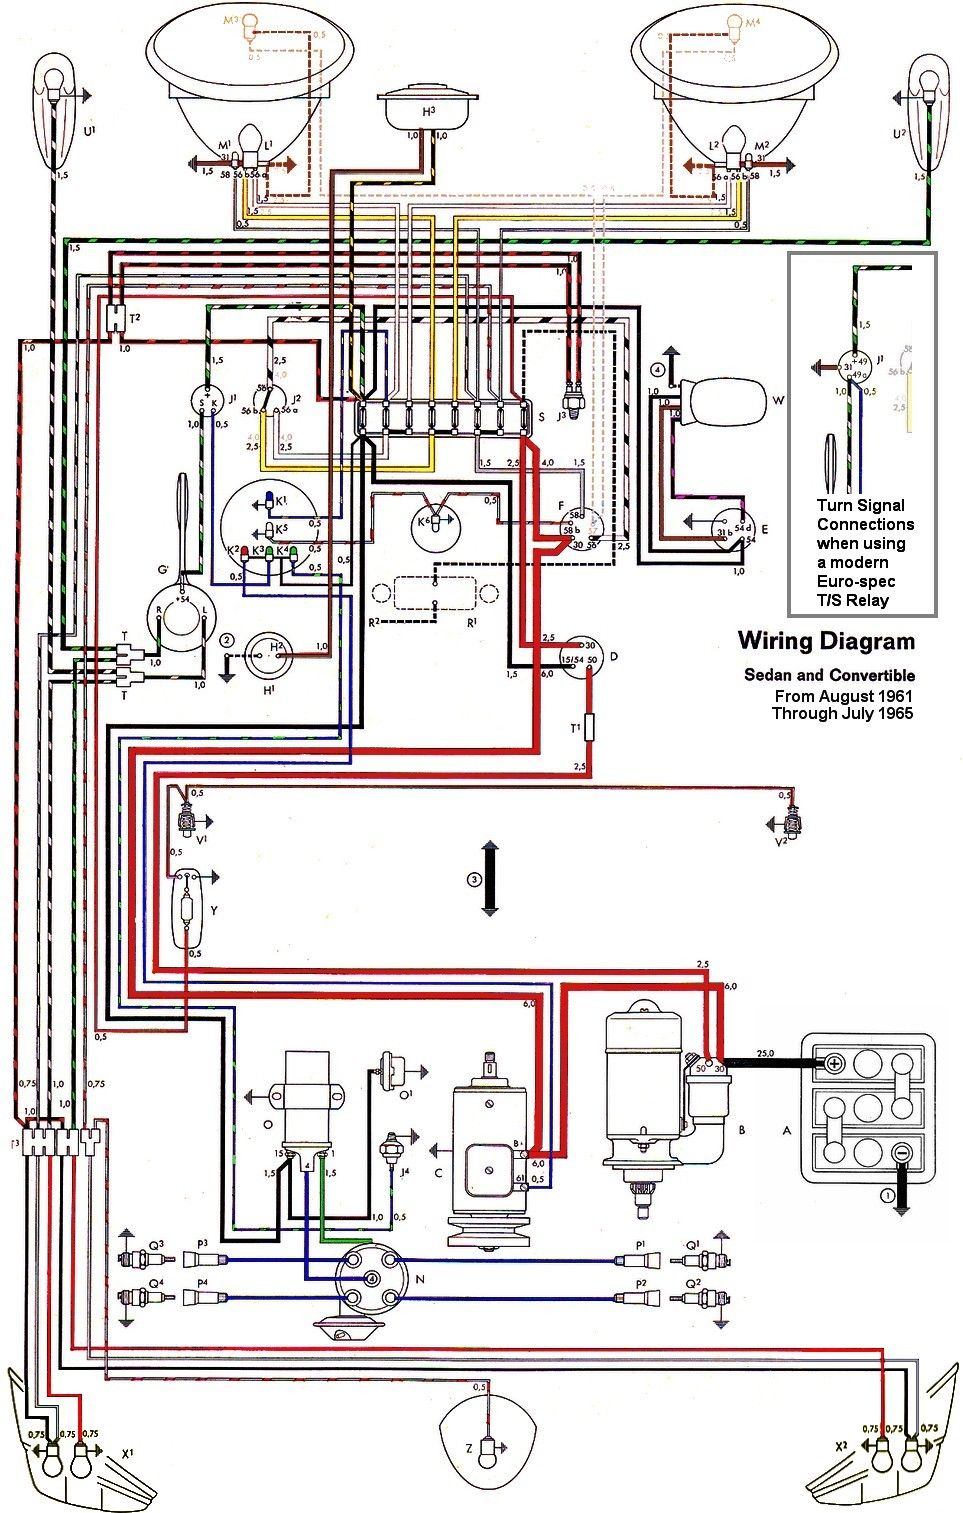 Wiring Diagram Vw Beetle Sedan And Convertible 1961 1965 Vw Vw Bug Side  Panel Vw Bug Wiring Kit